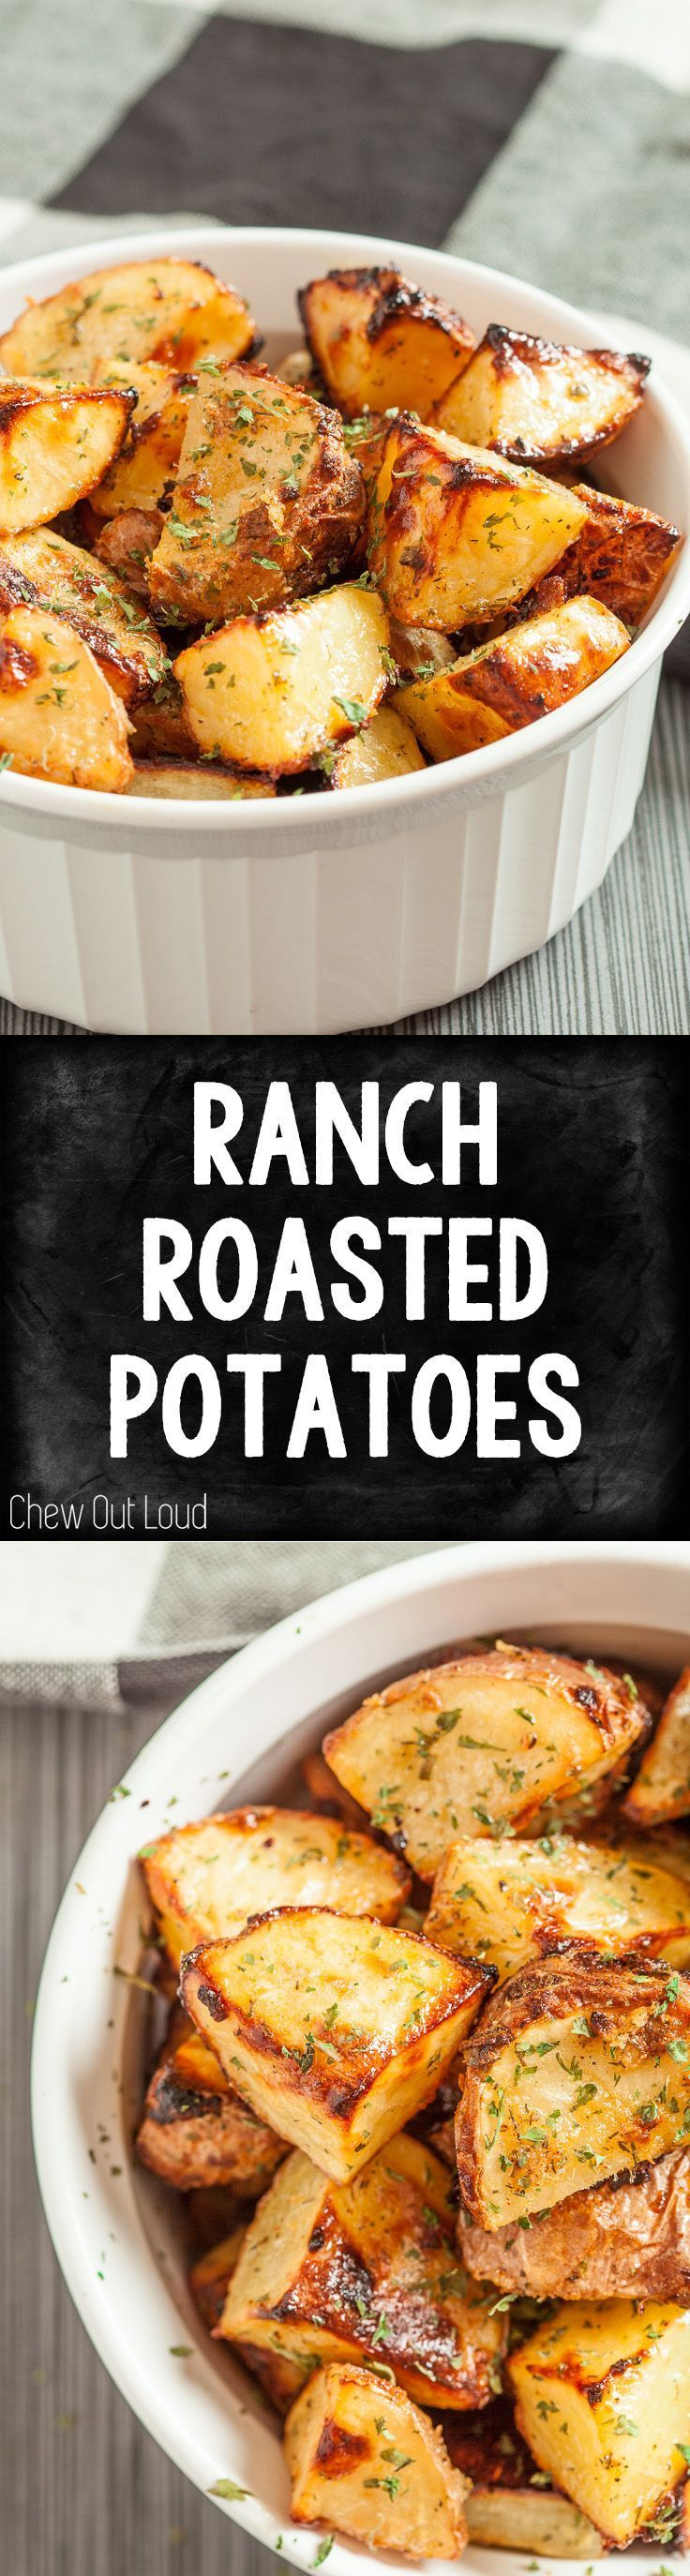 All-Natural, nothing artificial in these savory Ranch Roasted Potatoes. Simply delish. #potatoes #side